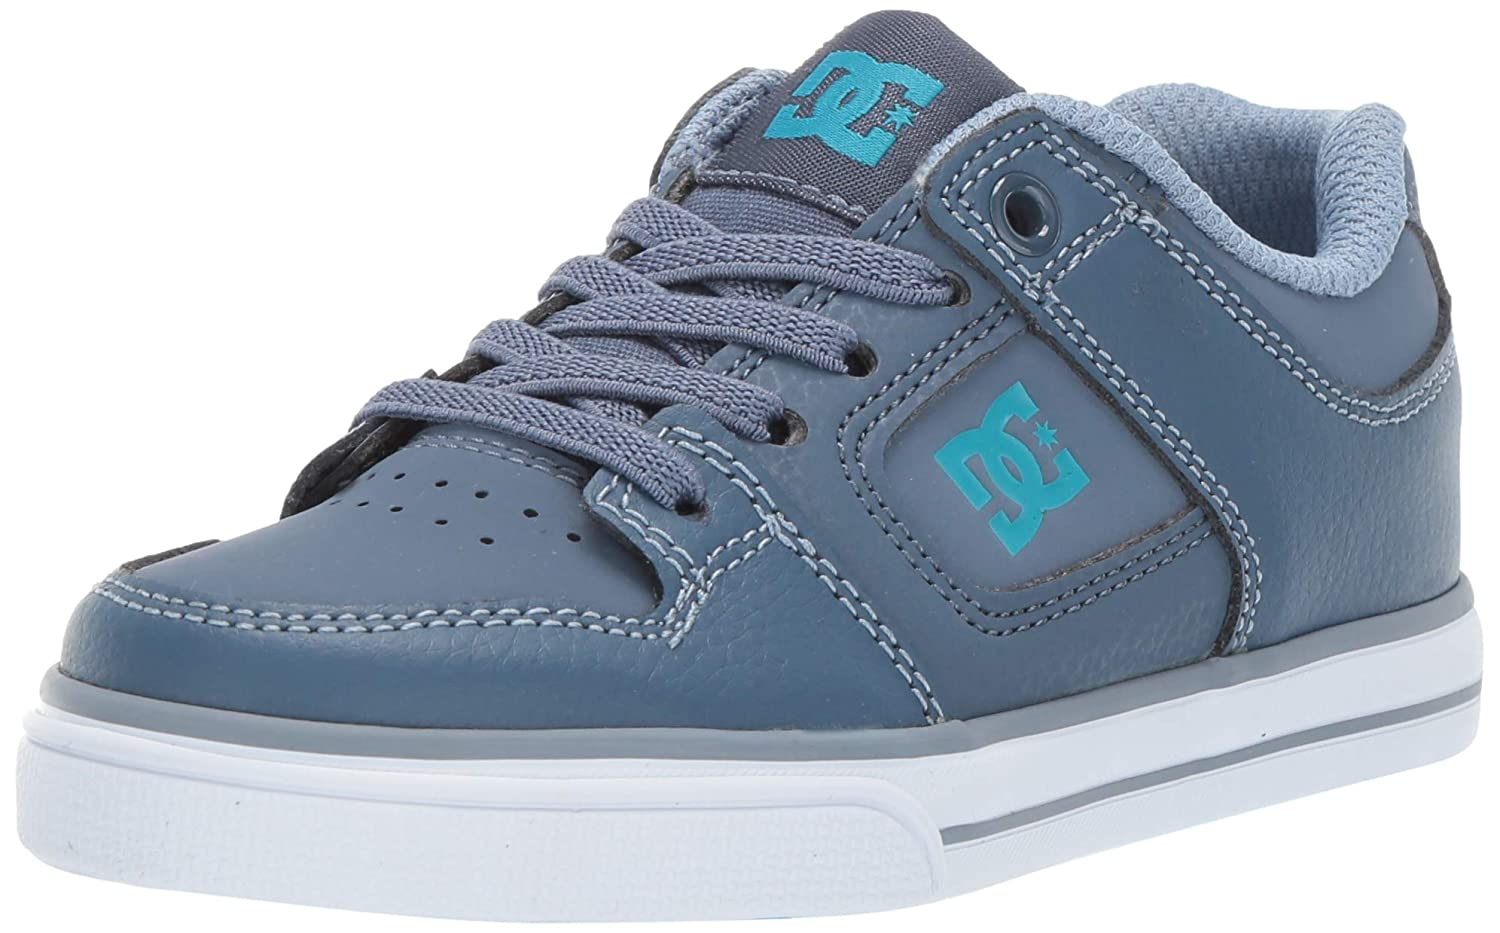 DC Shoes Pure Elastic Suede Lace-Up Low-Top Sneakers Youth Trainers